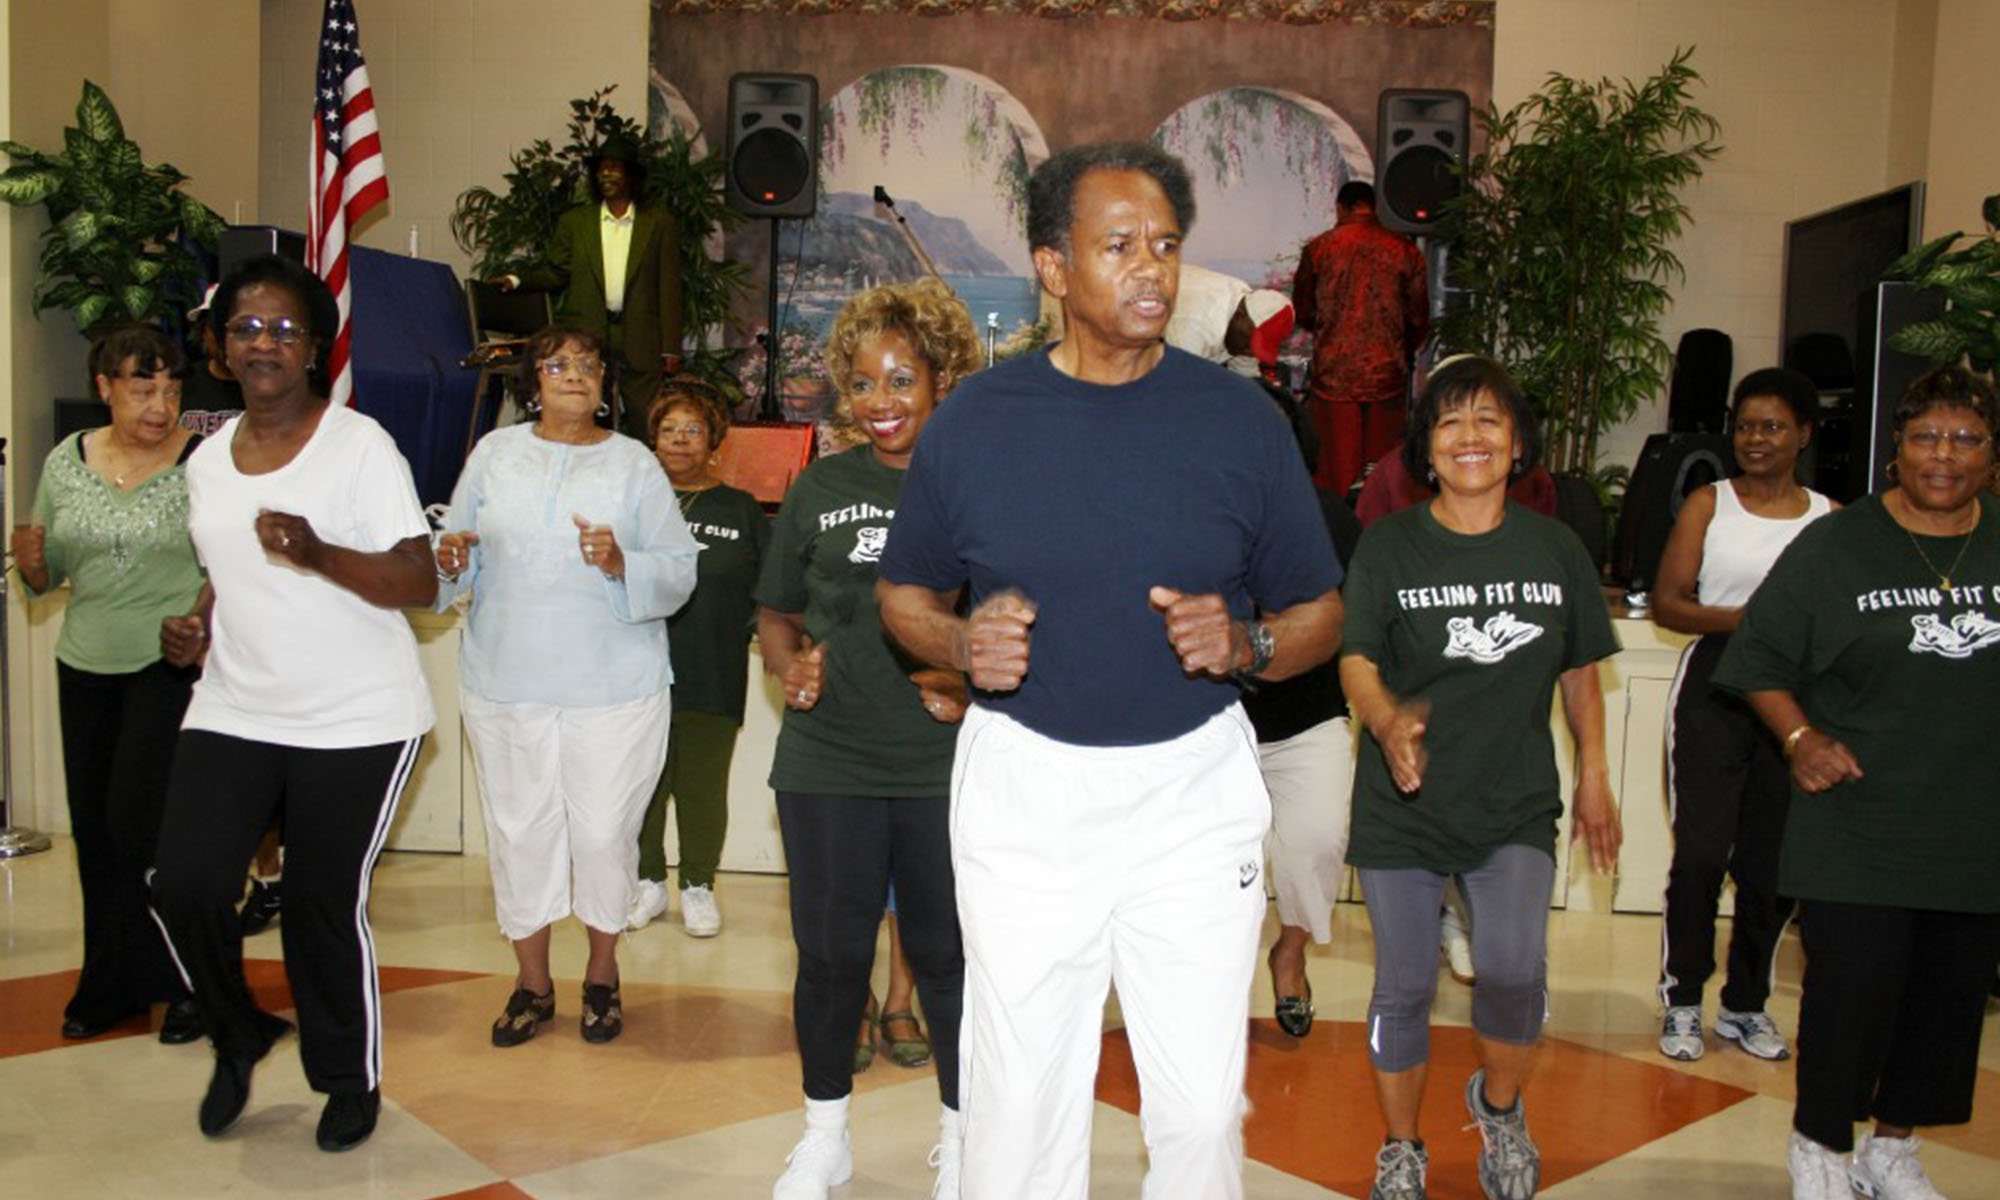 fdsrc-feeling-fit-club-exercise-class